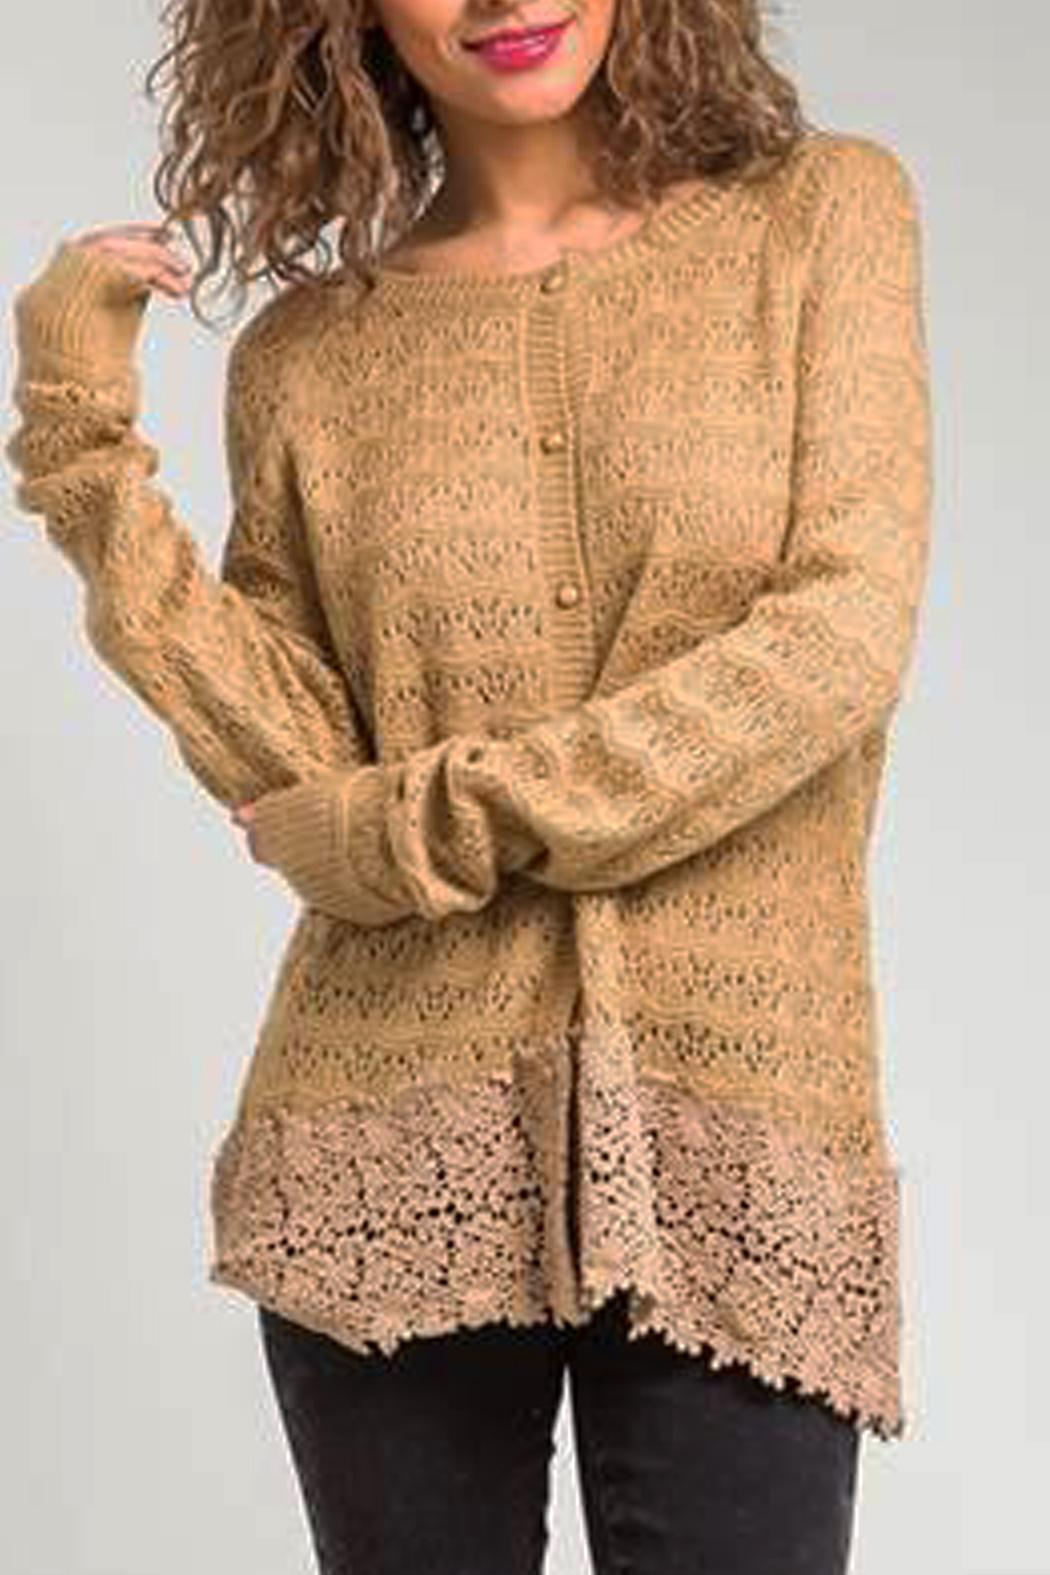 Basil & Lola Cream Lace Cuffed Cardigan from California by Bus ...